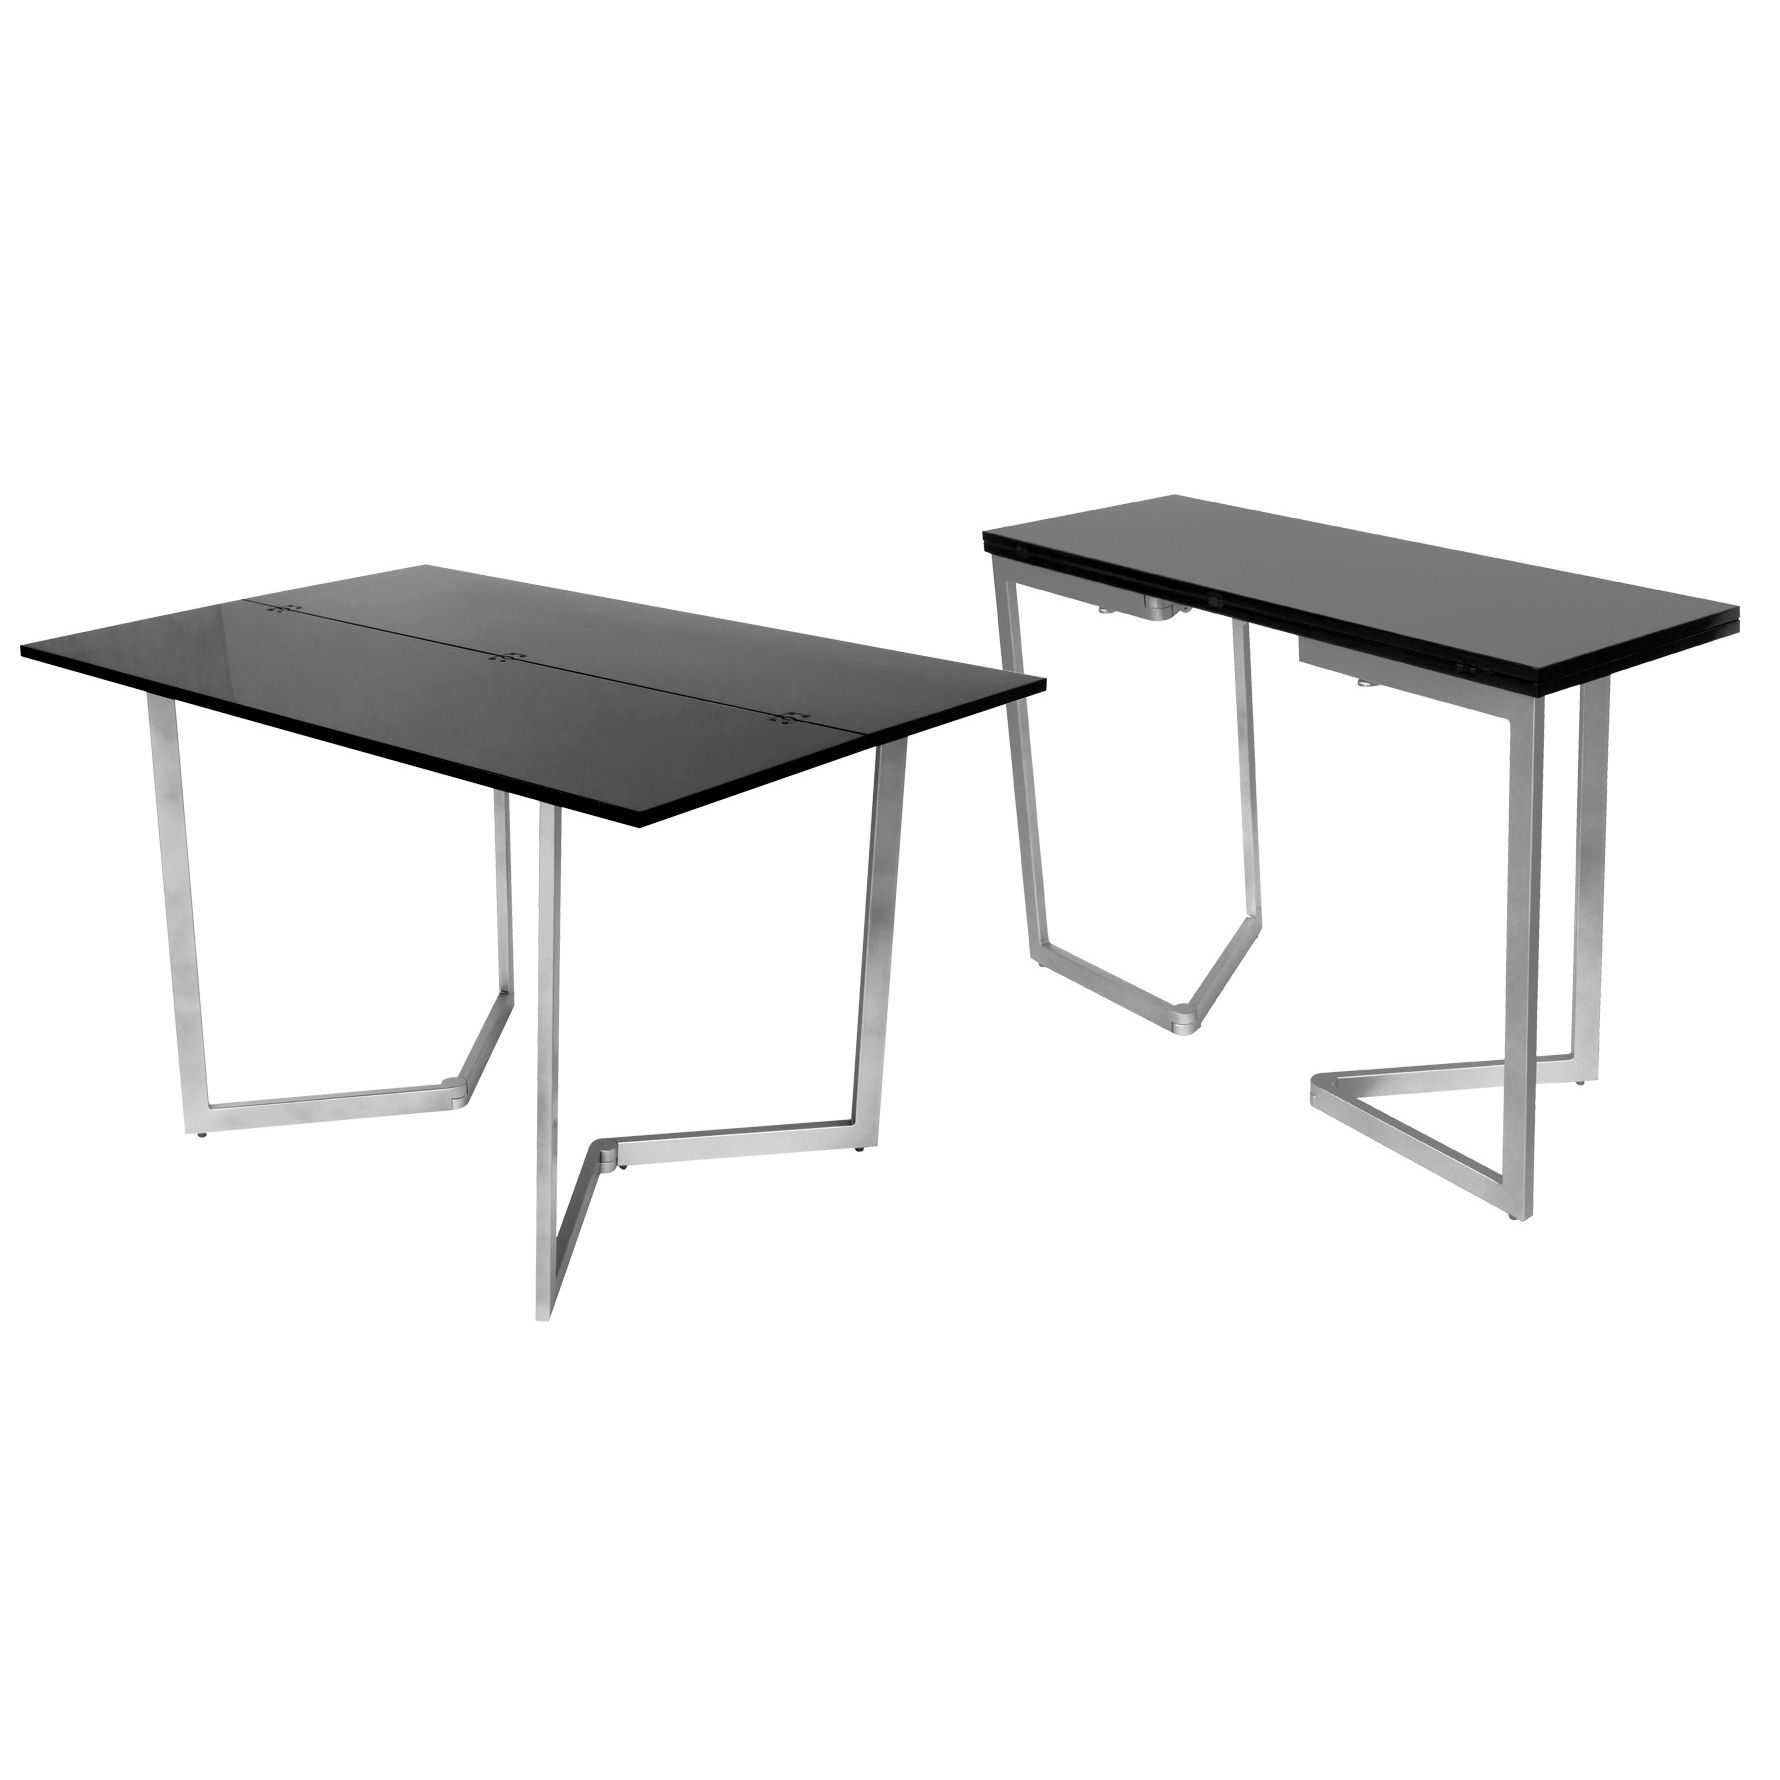 Deco in paris table console extensible noire laquee - Console de table ...